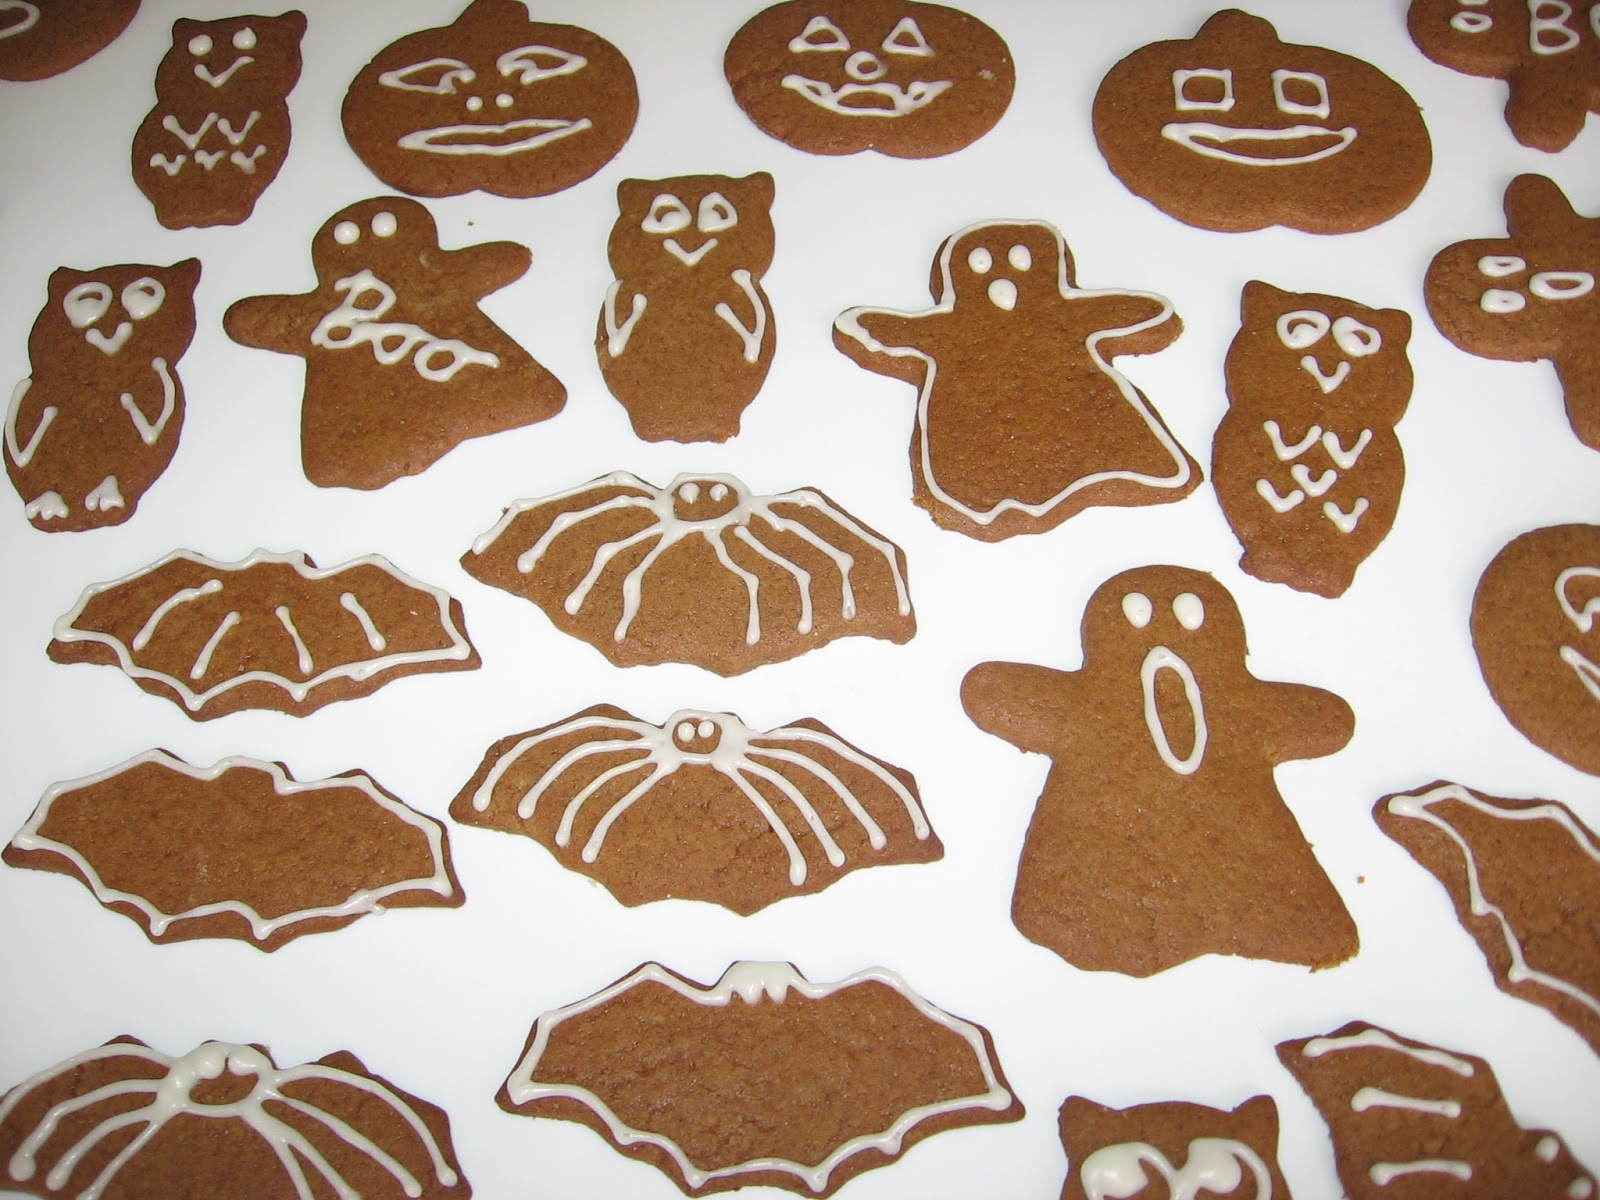 iced gingerbread cookies i love making iced cookies iced sugar cookies are a big christmas tradition in our family and we have made them more and more - Halloween Gingerbread Cookies